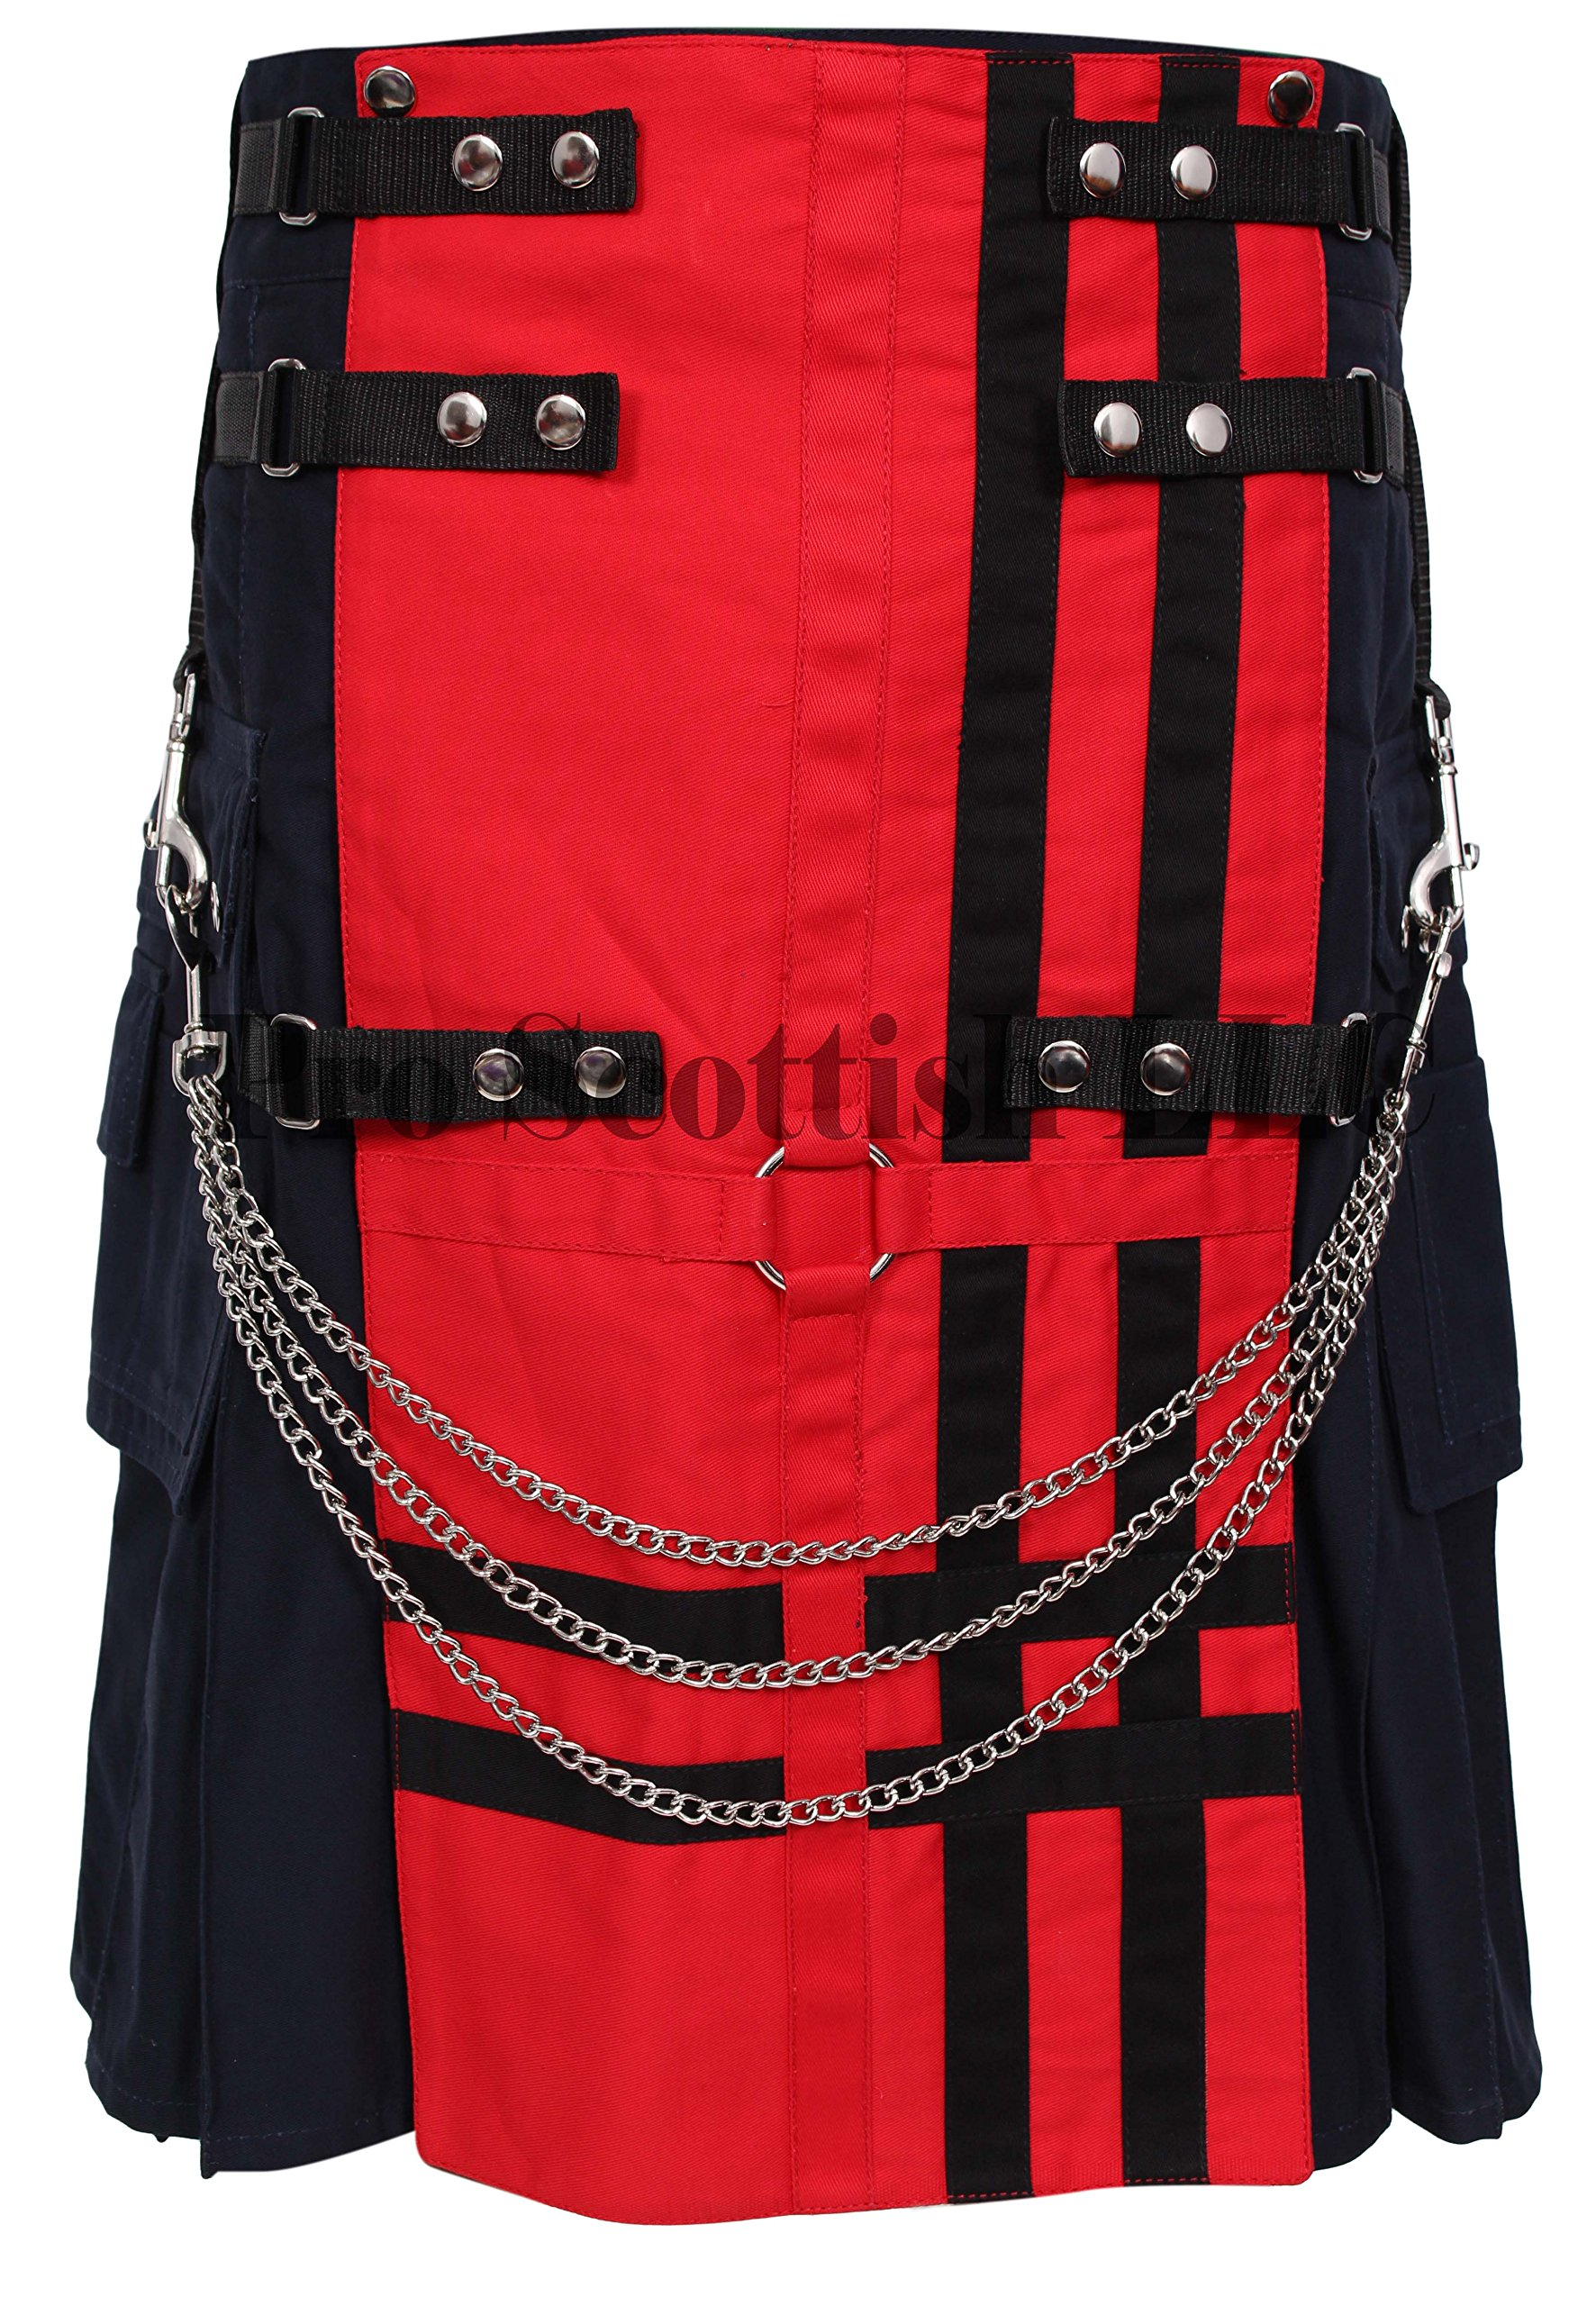 Red/Navy Deluxe Utility Fashion Kilt (40W x 24L)